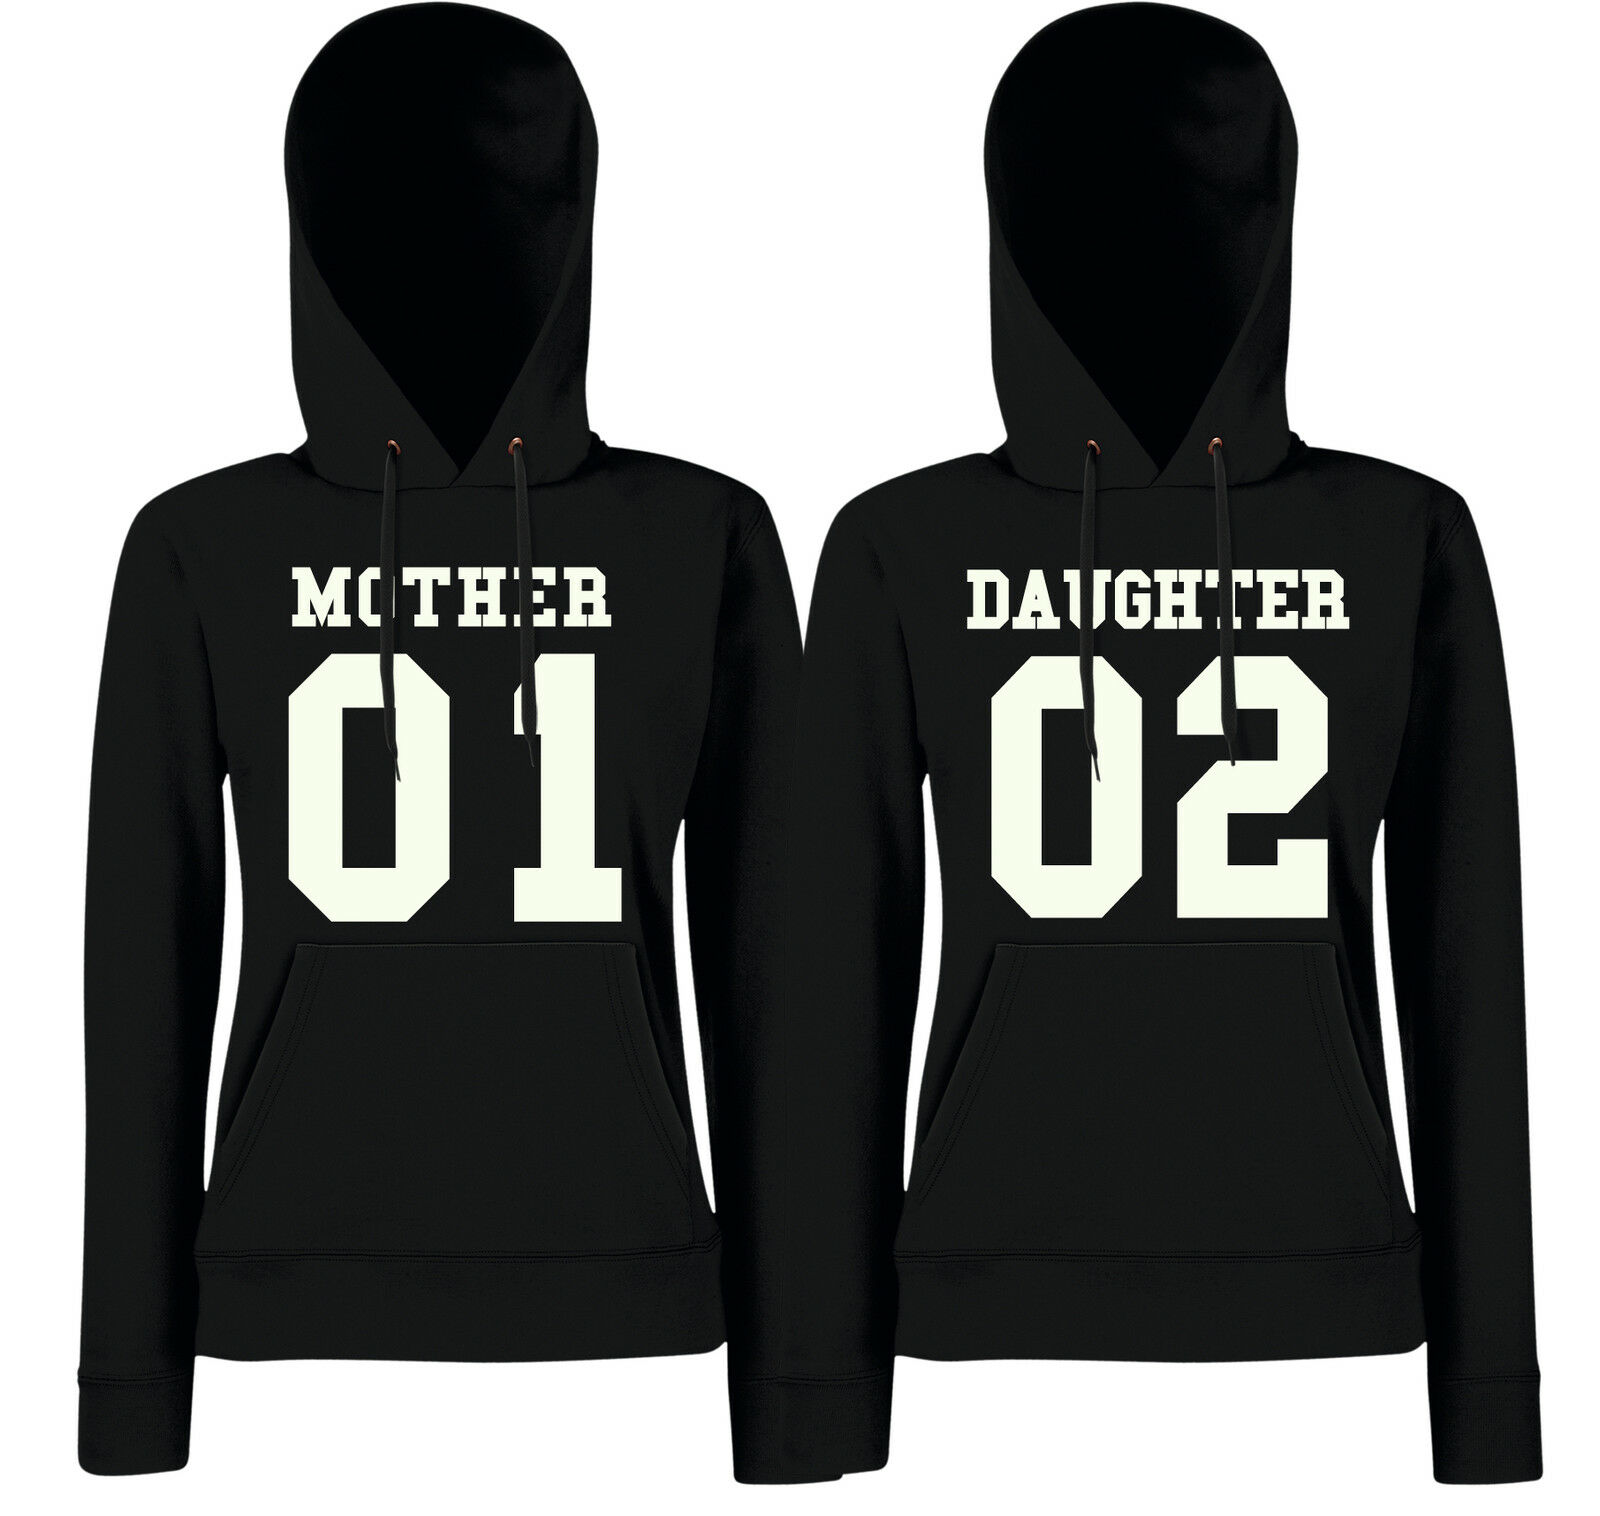 MOTHER + DAUGHTER 01 02 - Partner Hoodies - Mutter Tocher Eltern Friends Liebe